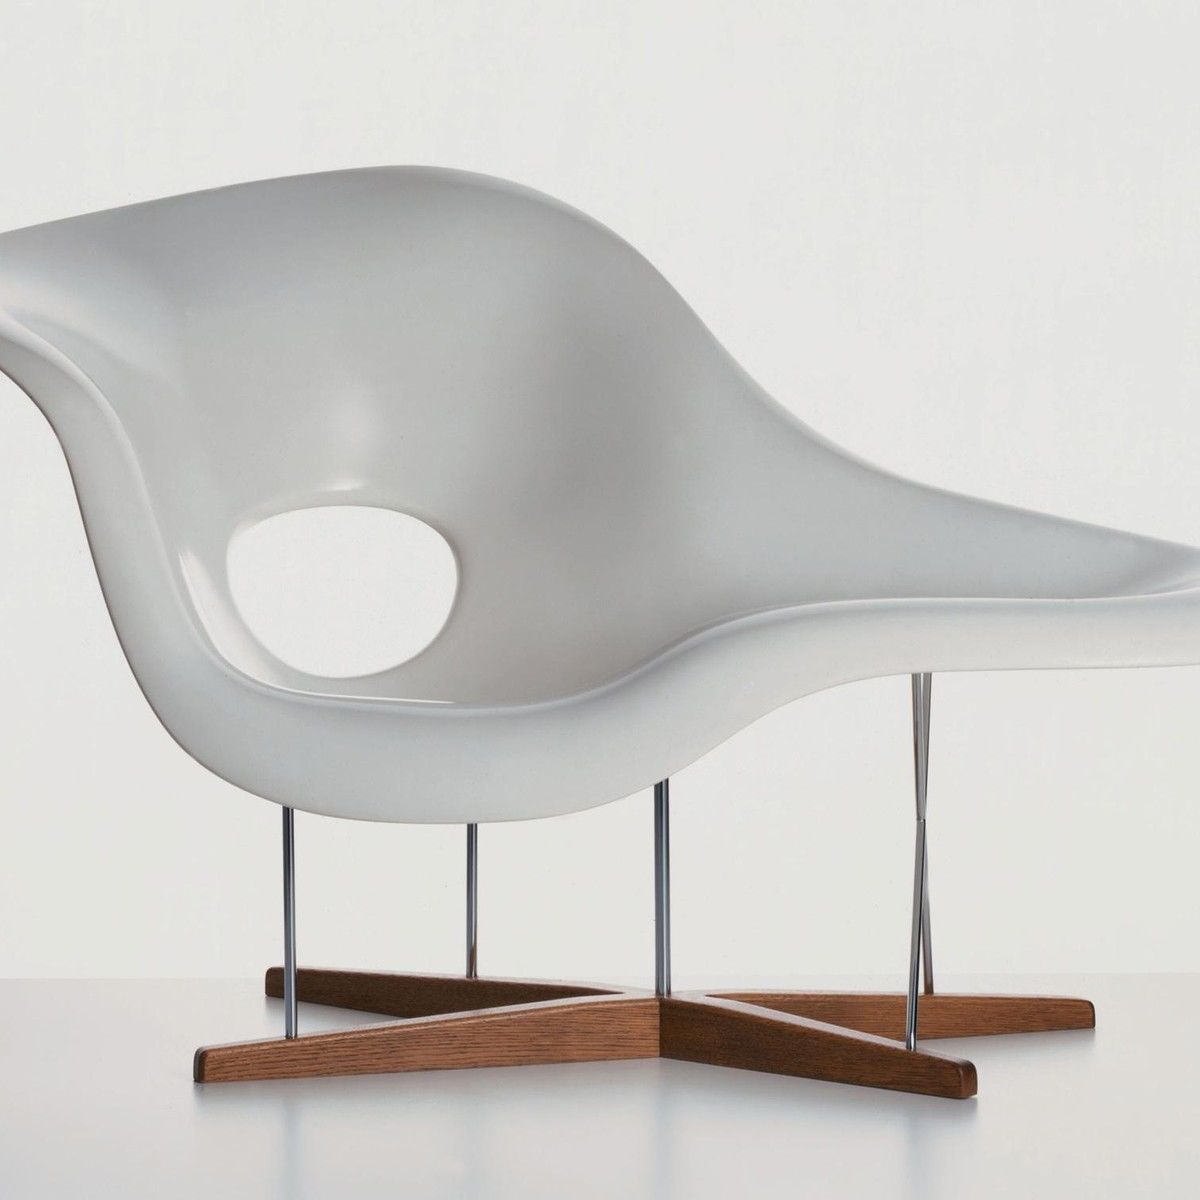 La chaise eames chaise longue vitra for Eames chaise